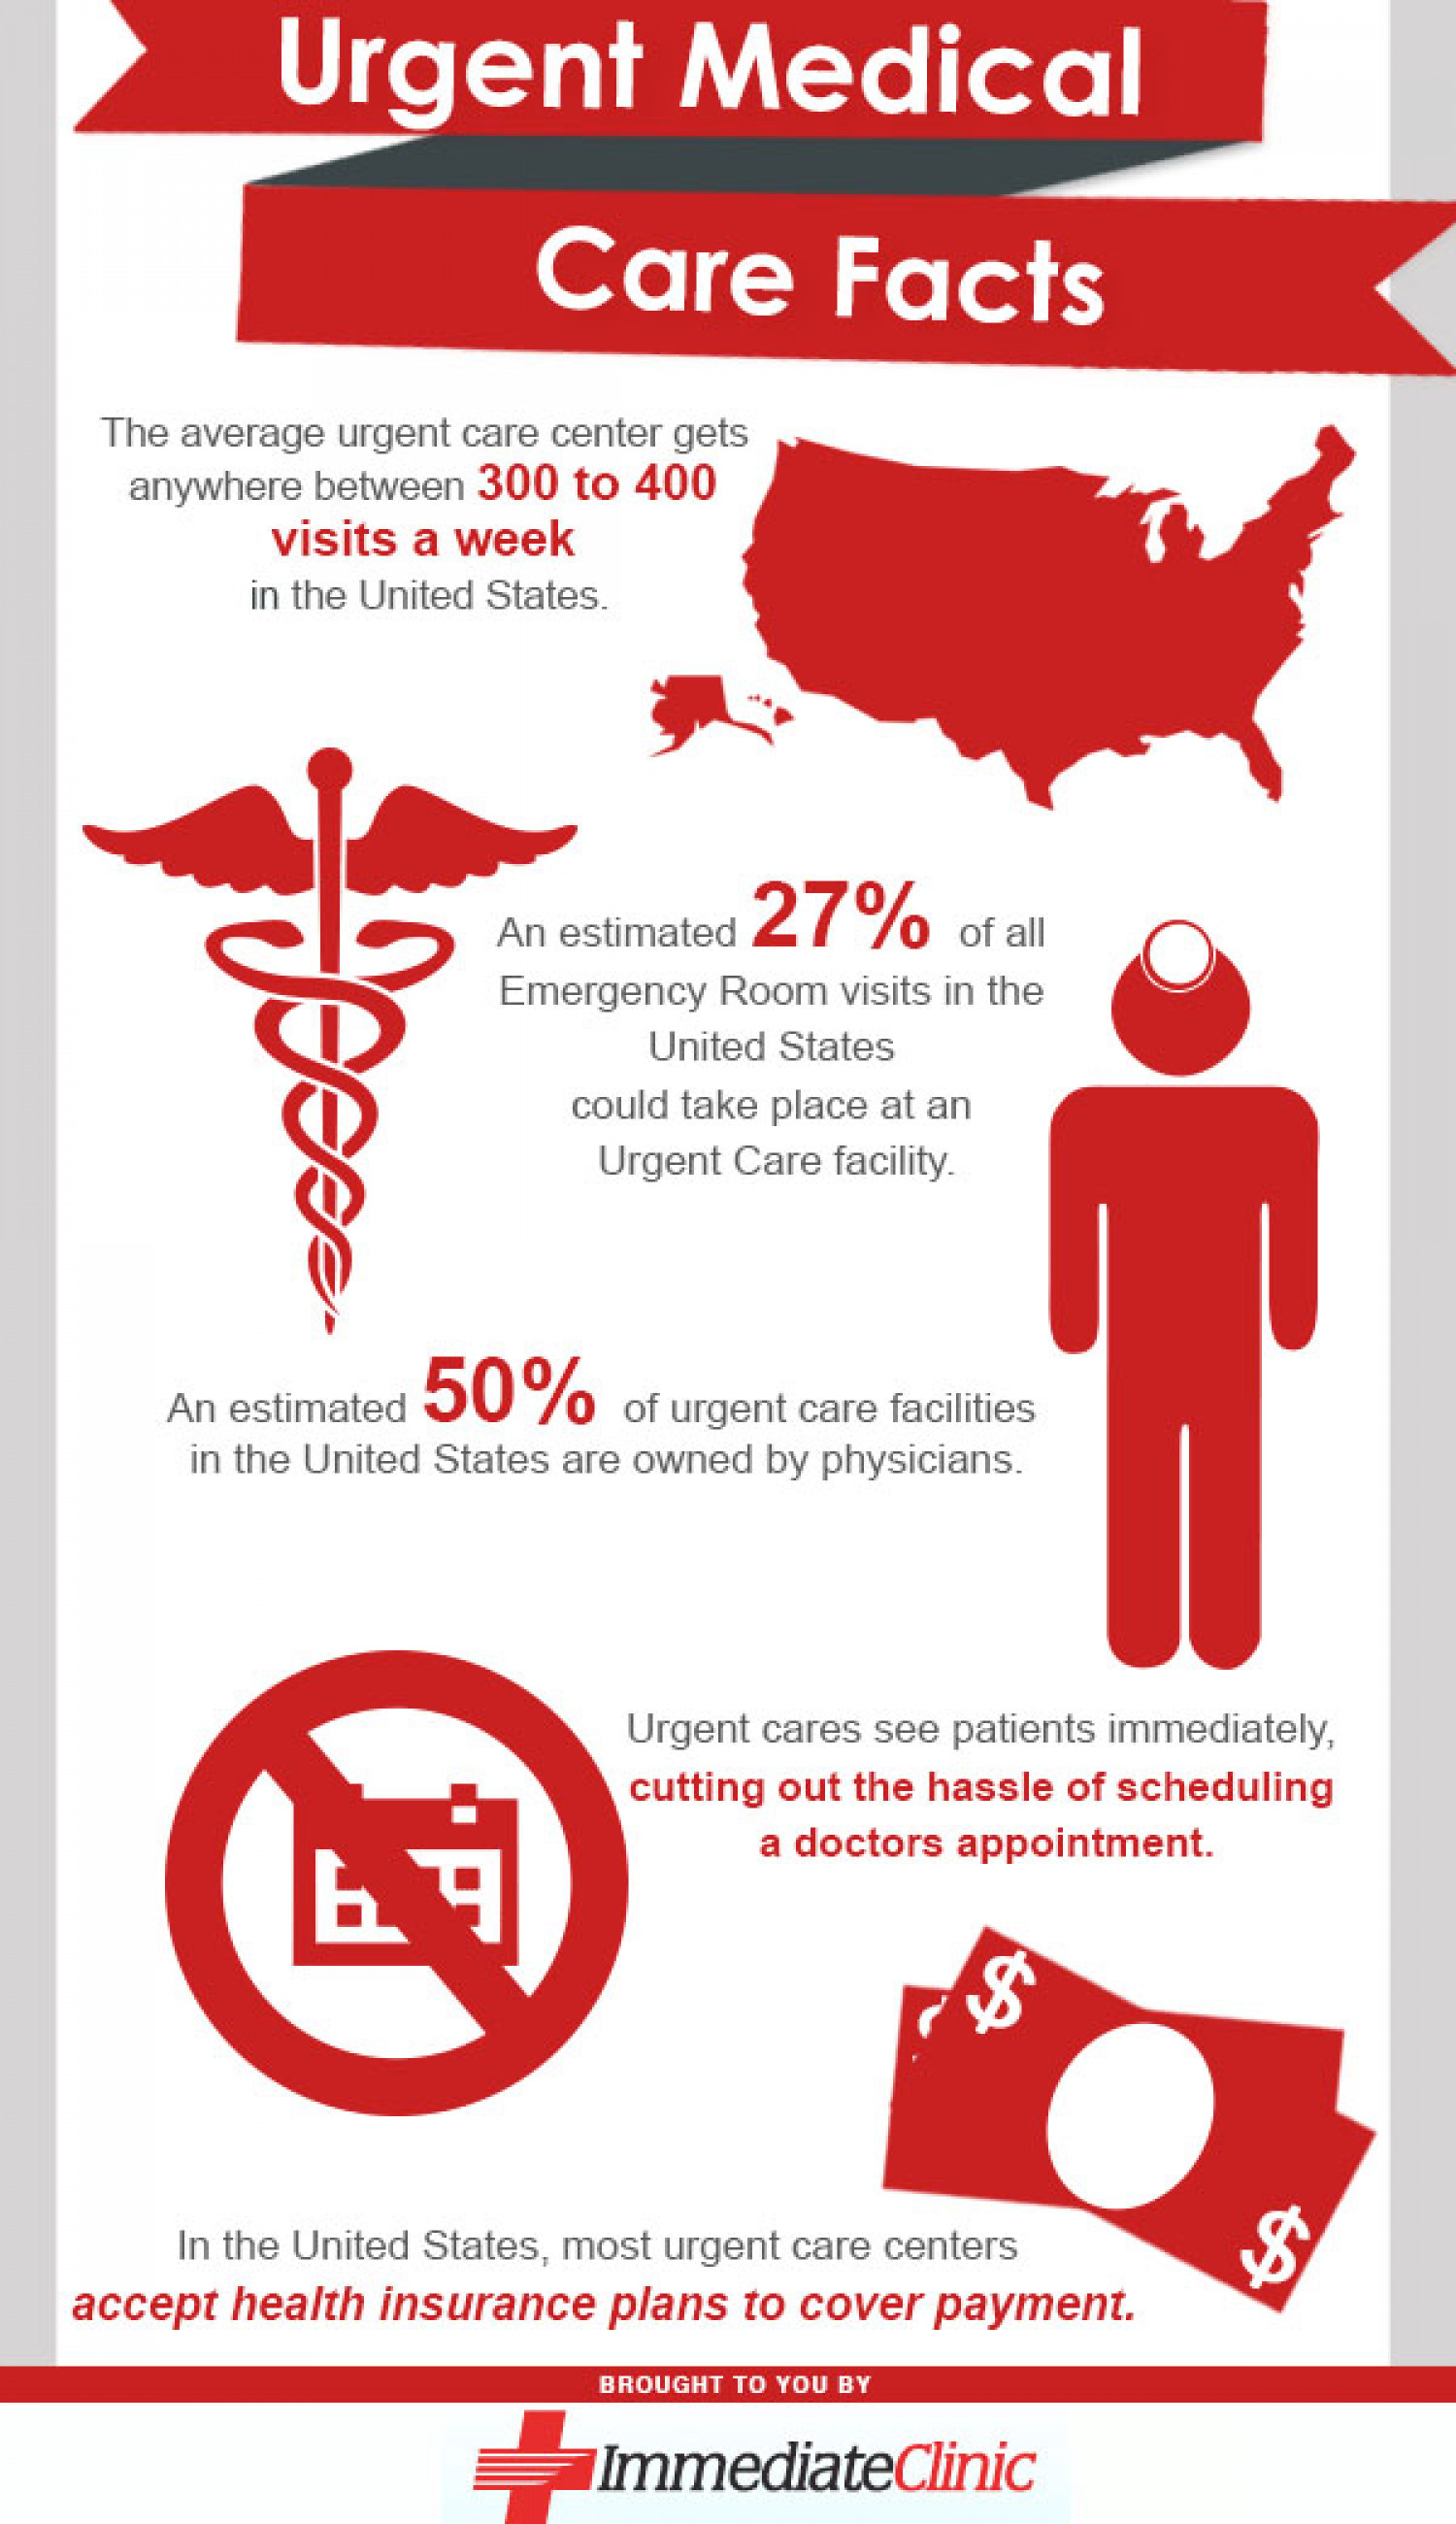 Urgent Medical Care Facts Infographic